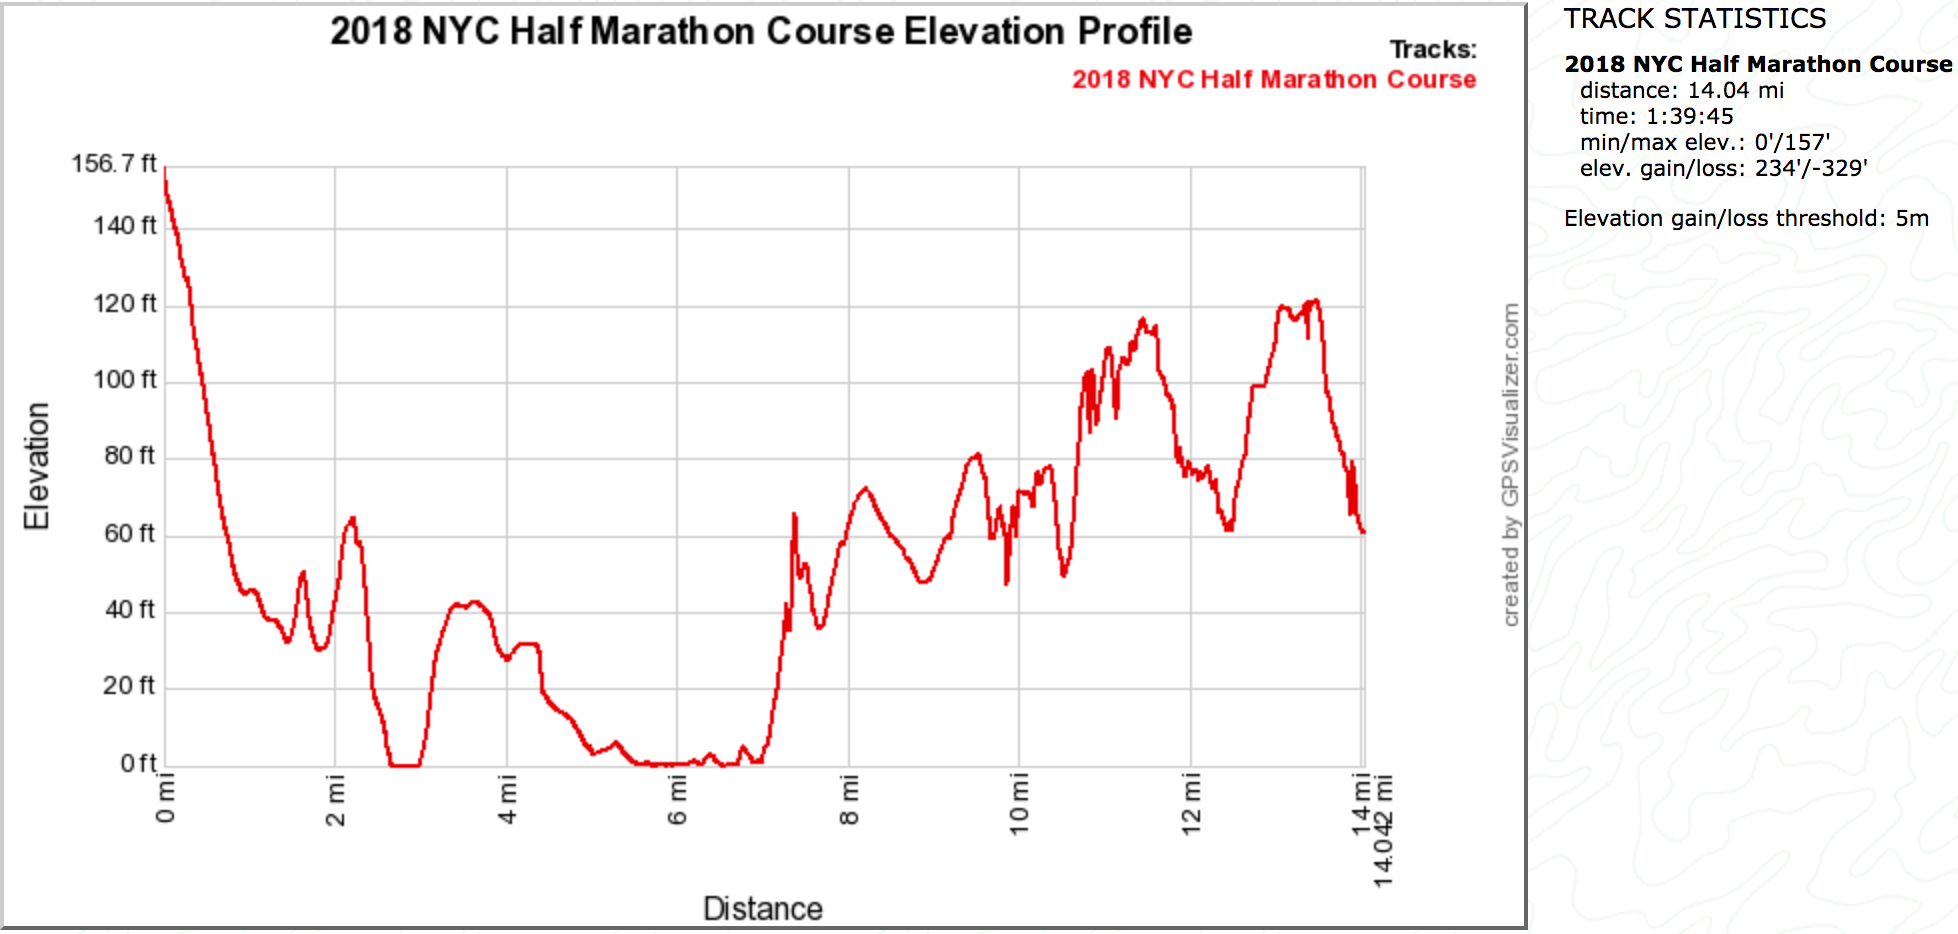 2018 NYC Half Marathon Course Elevation Profile